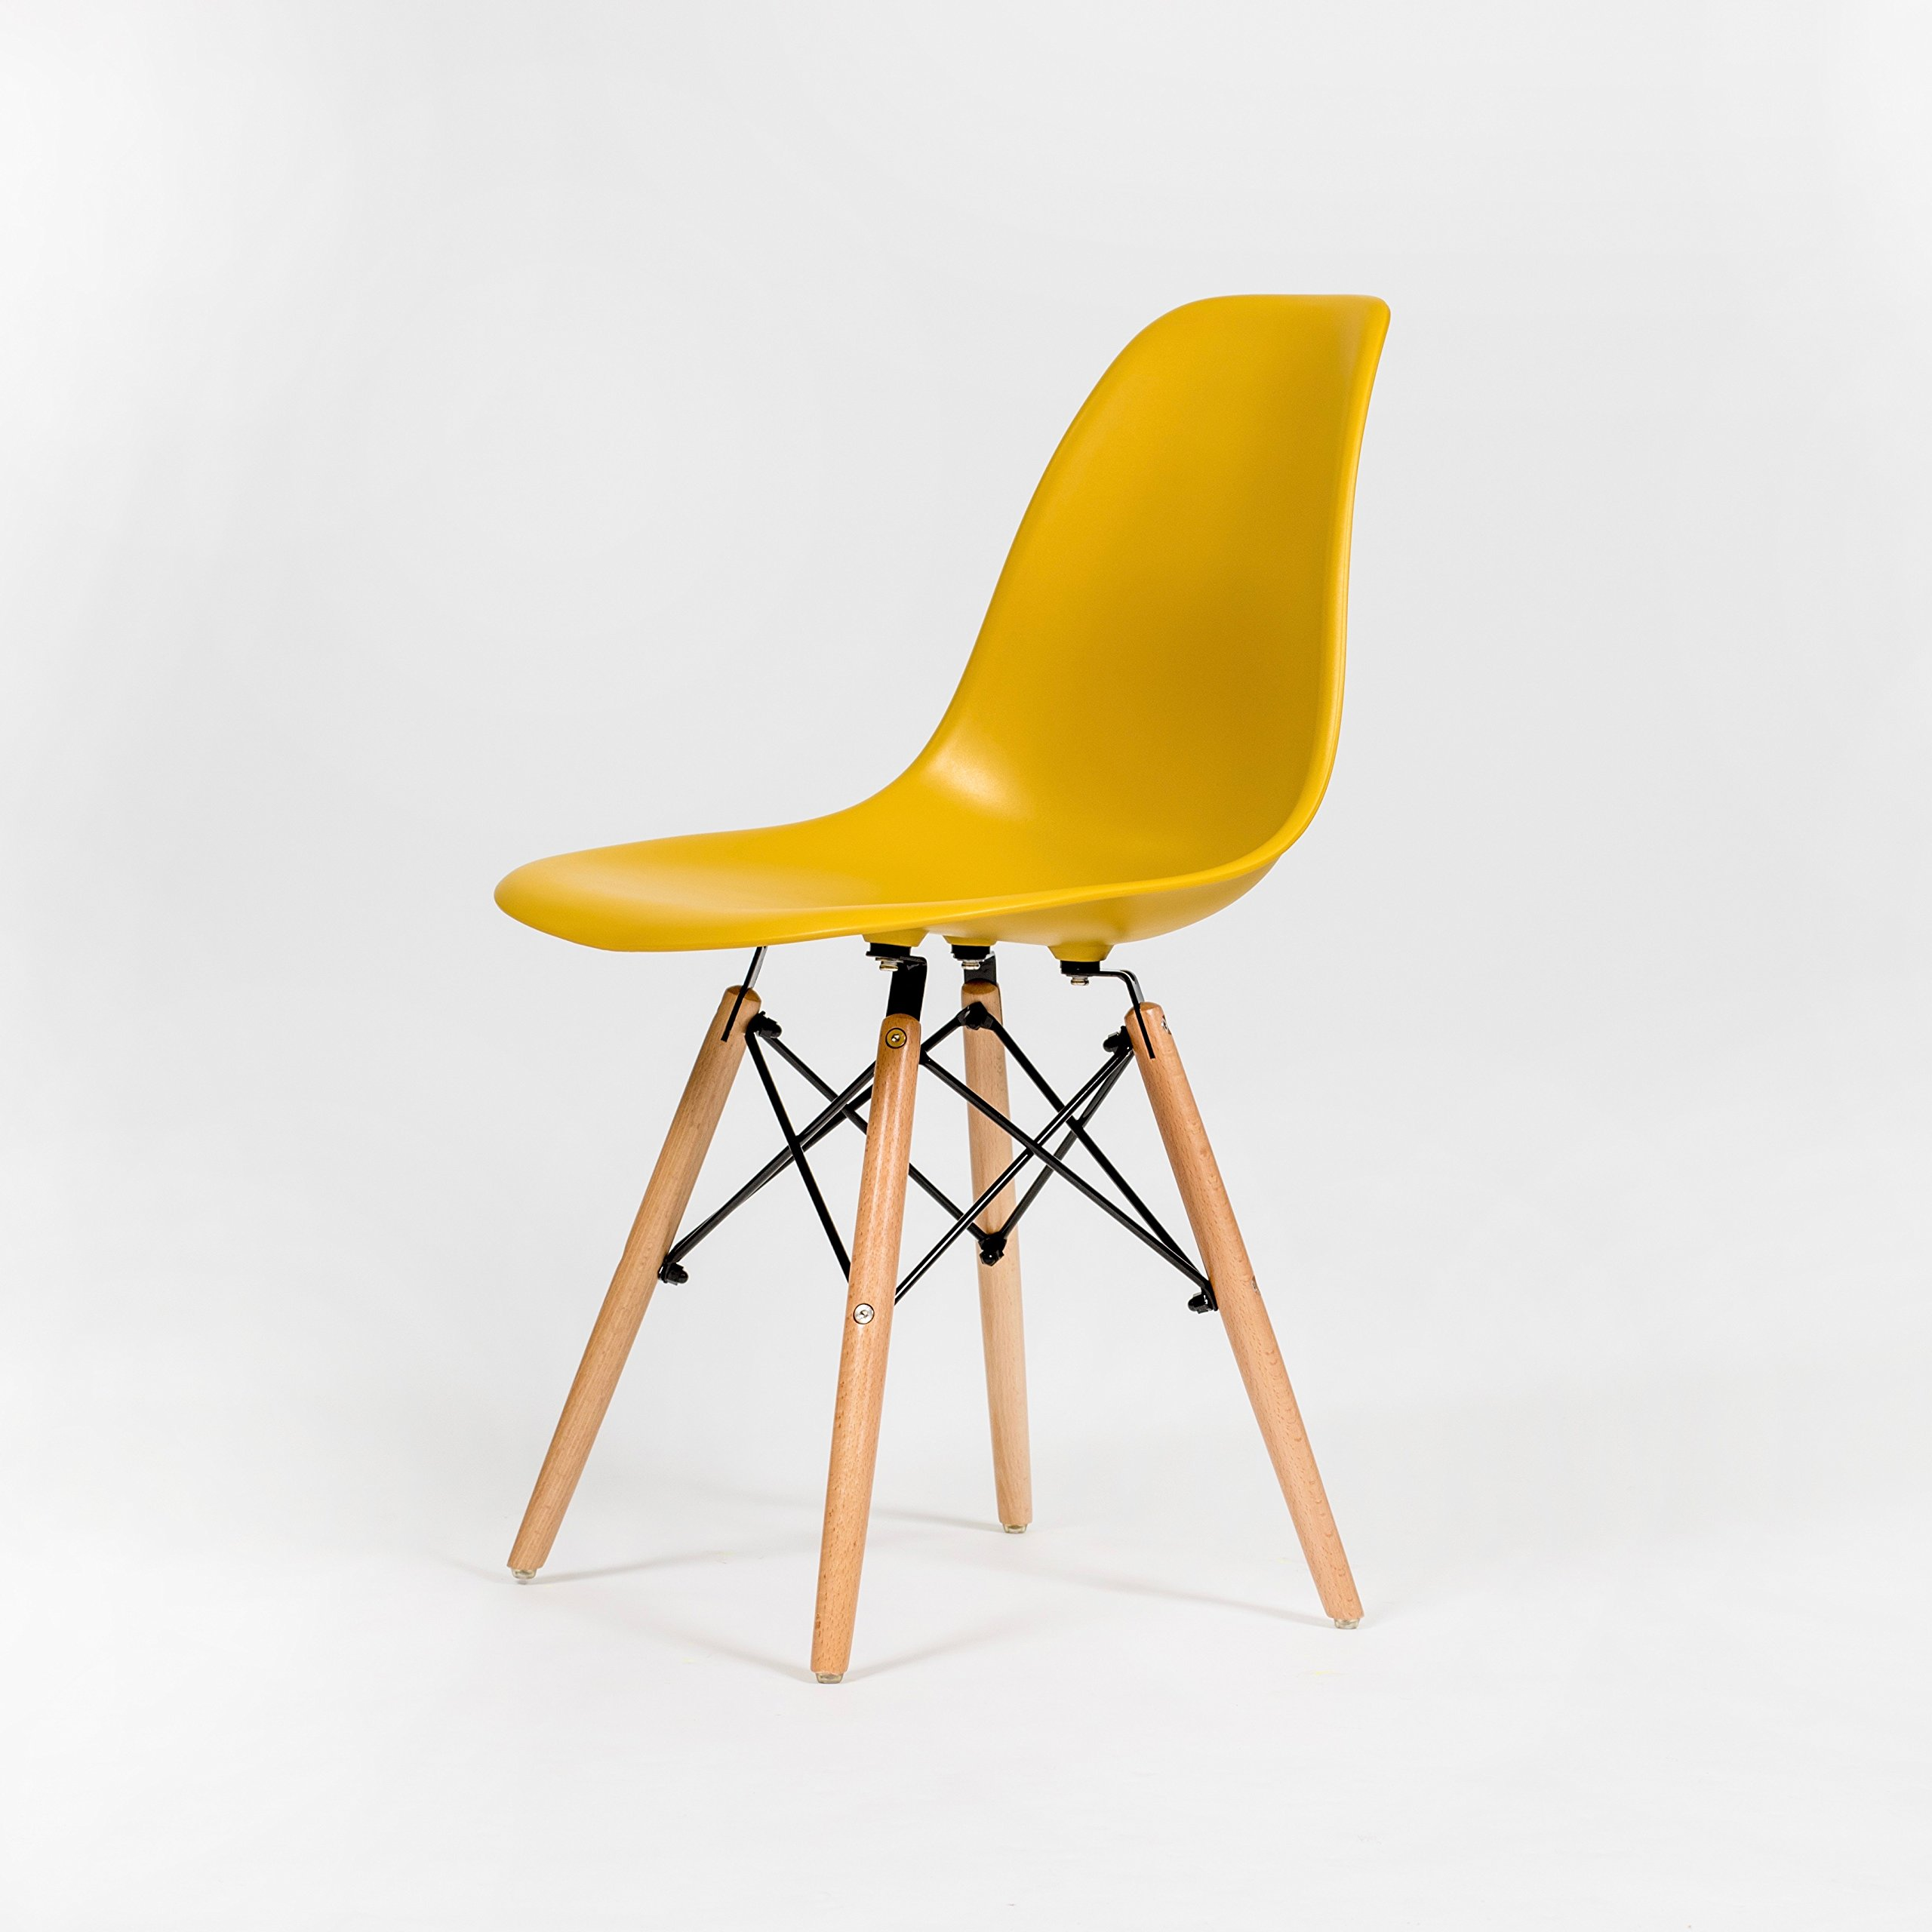 OCHS High Quality Eames Inspired Eiffel Retro DSW Plastic Dining Office  Lounge Chair Panton Designer Chair